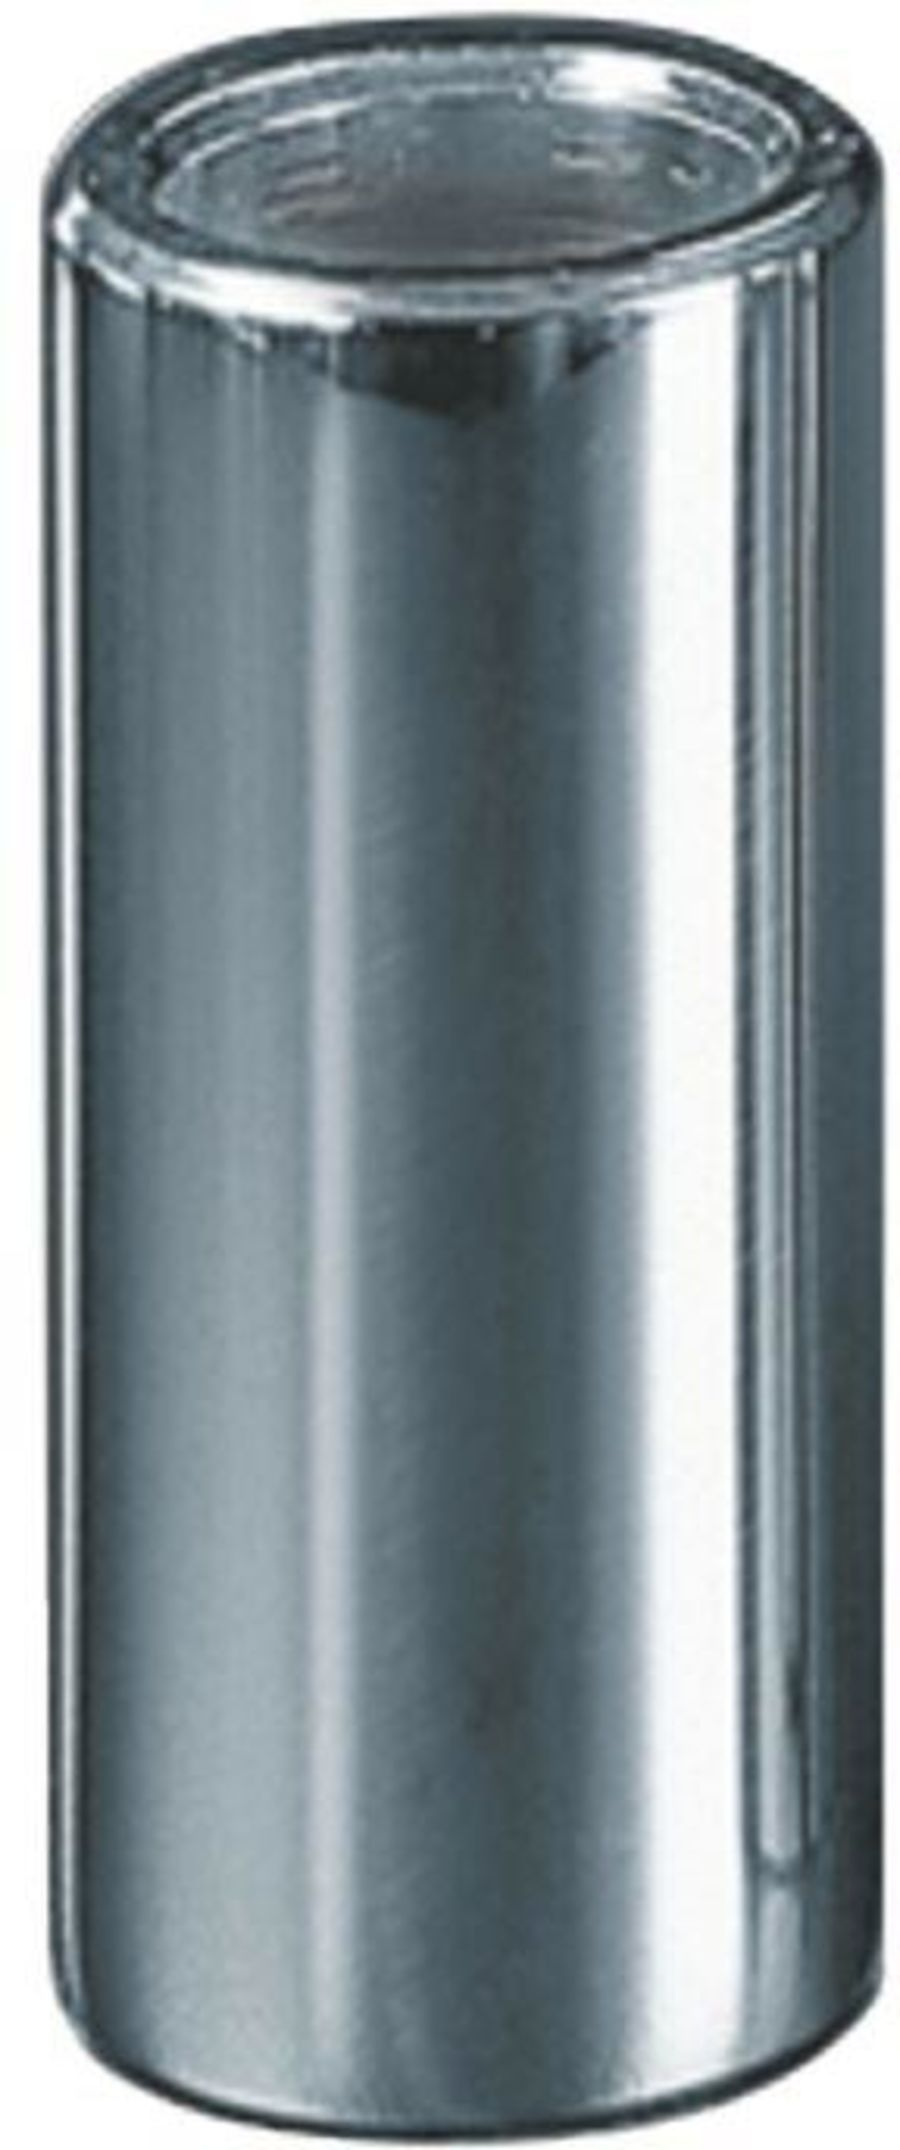 Dunlop 220 Chromed Steel Slide, Medium Wall, Standard